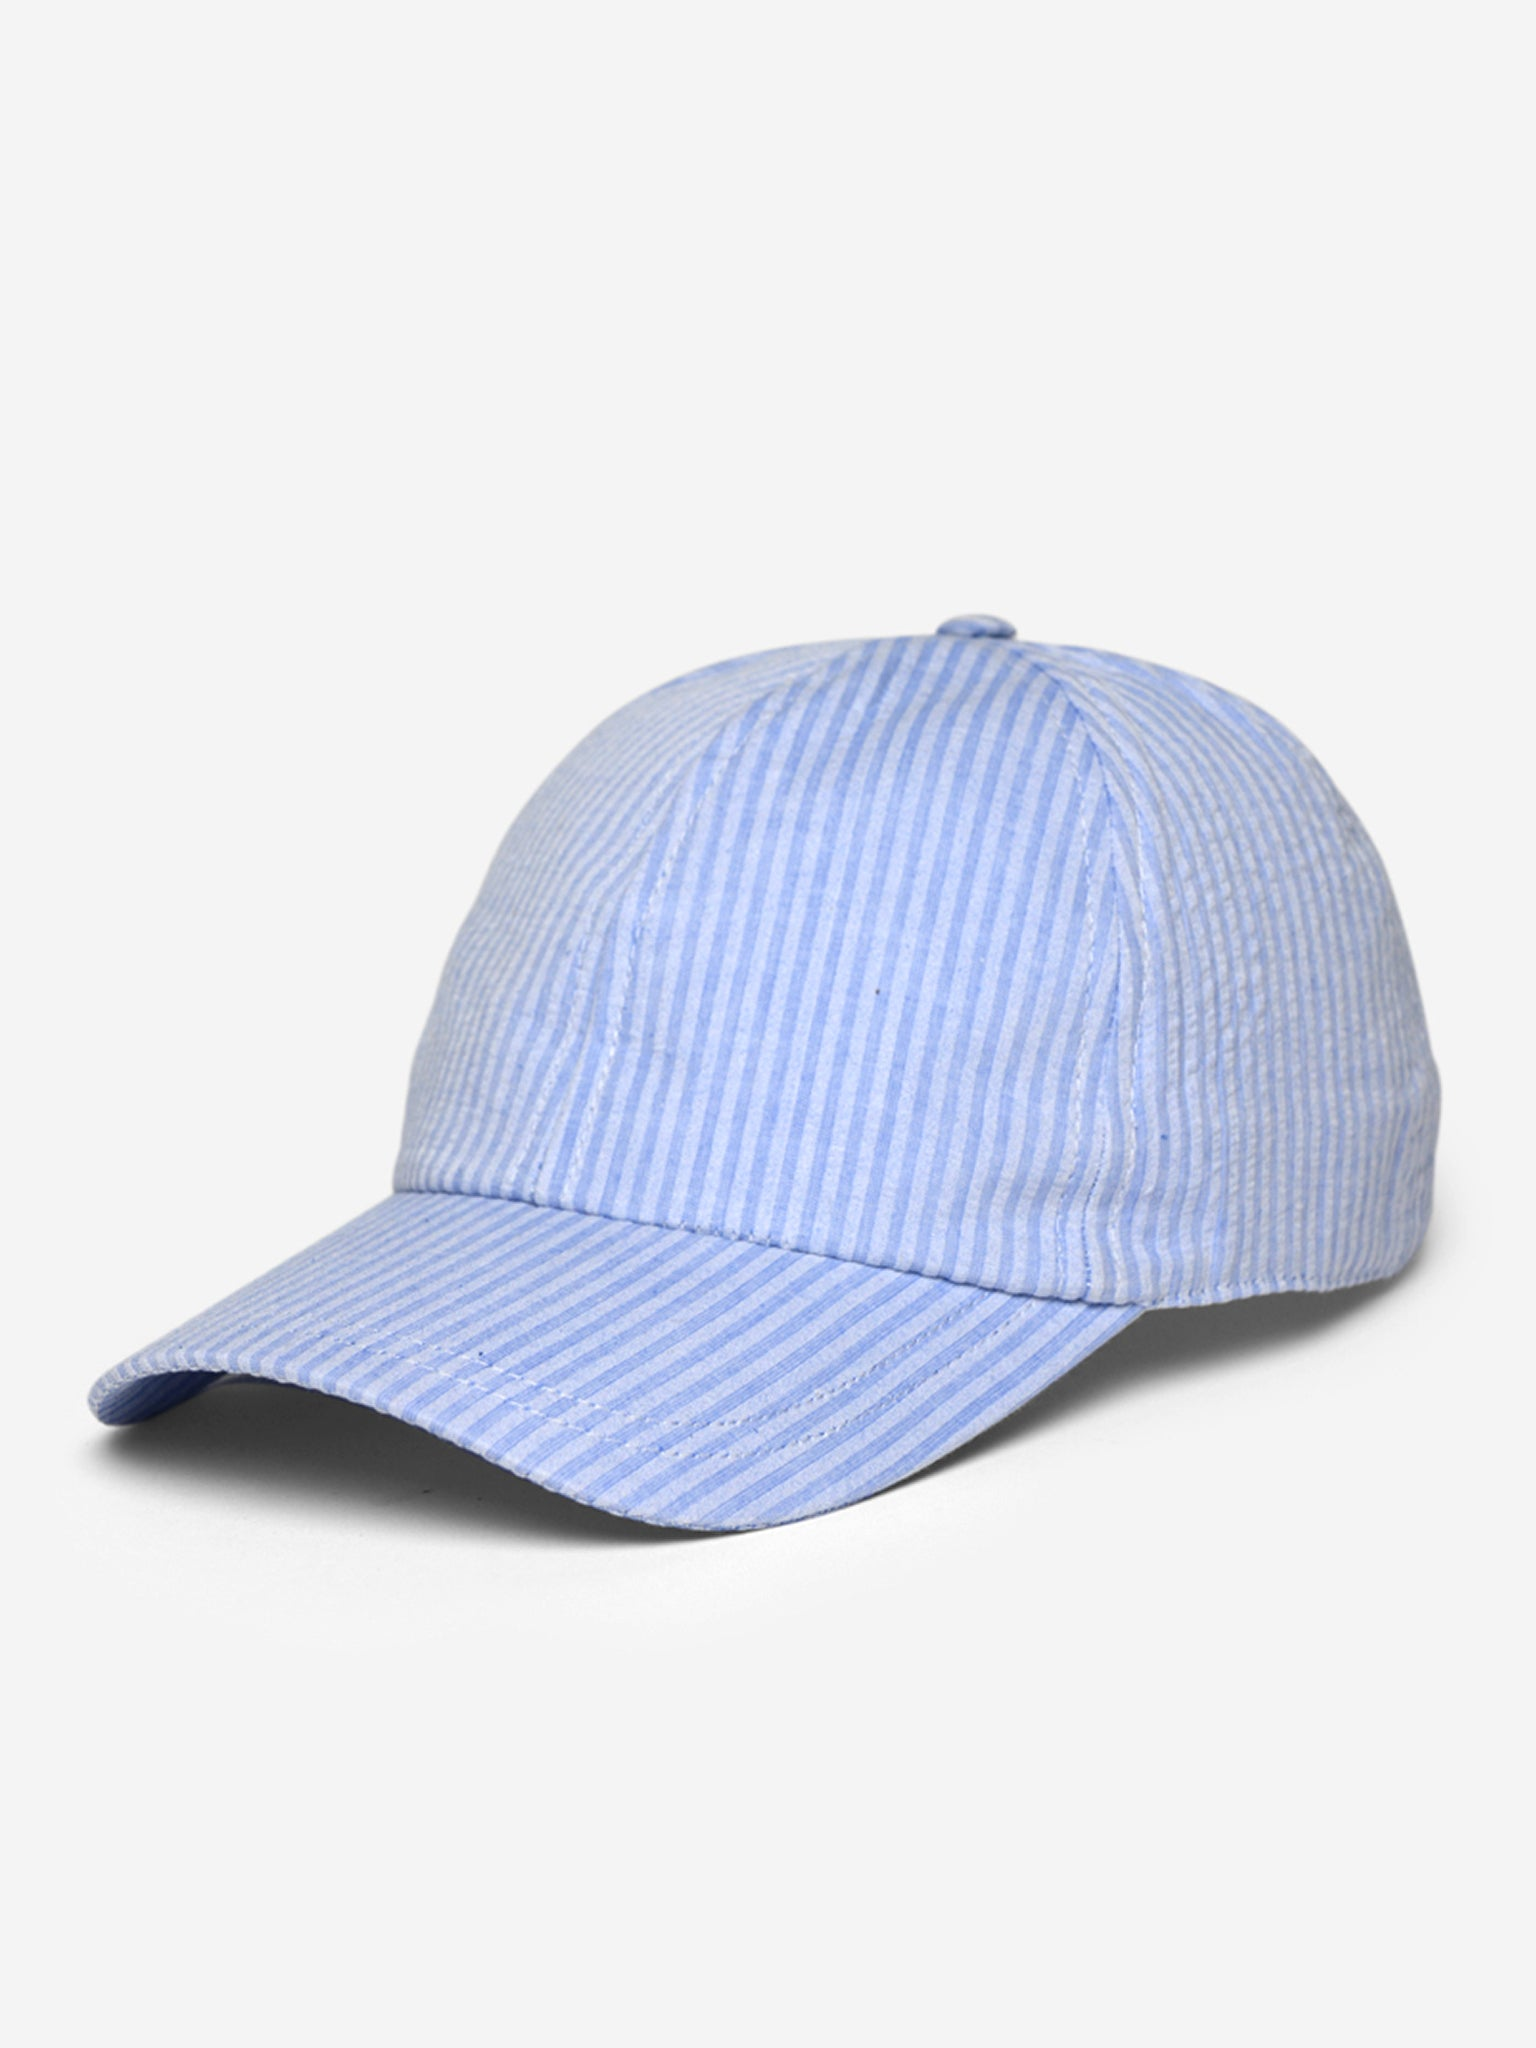 Reality Studio Udad Cap Unisex Blue Stripes